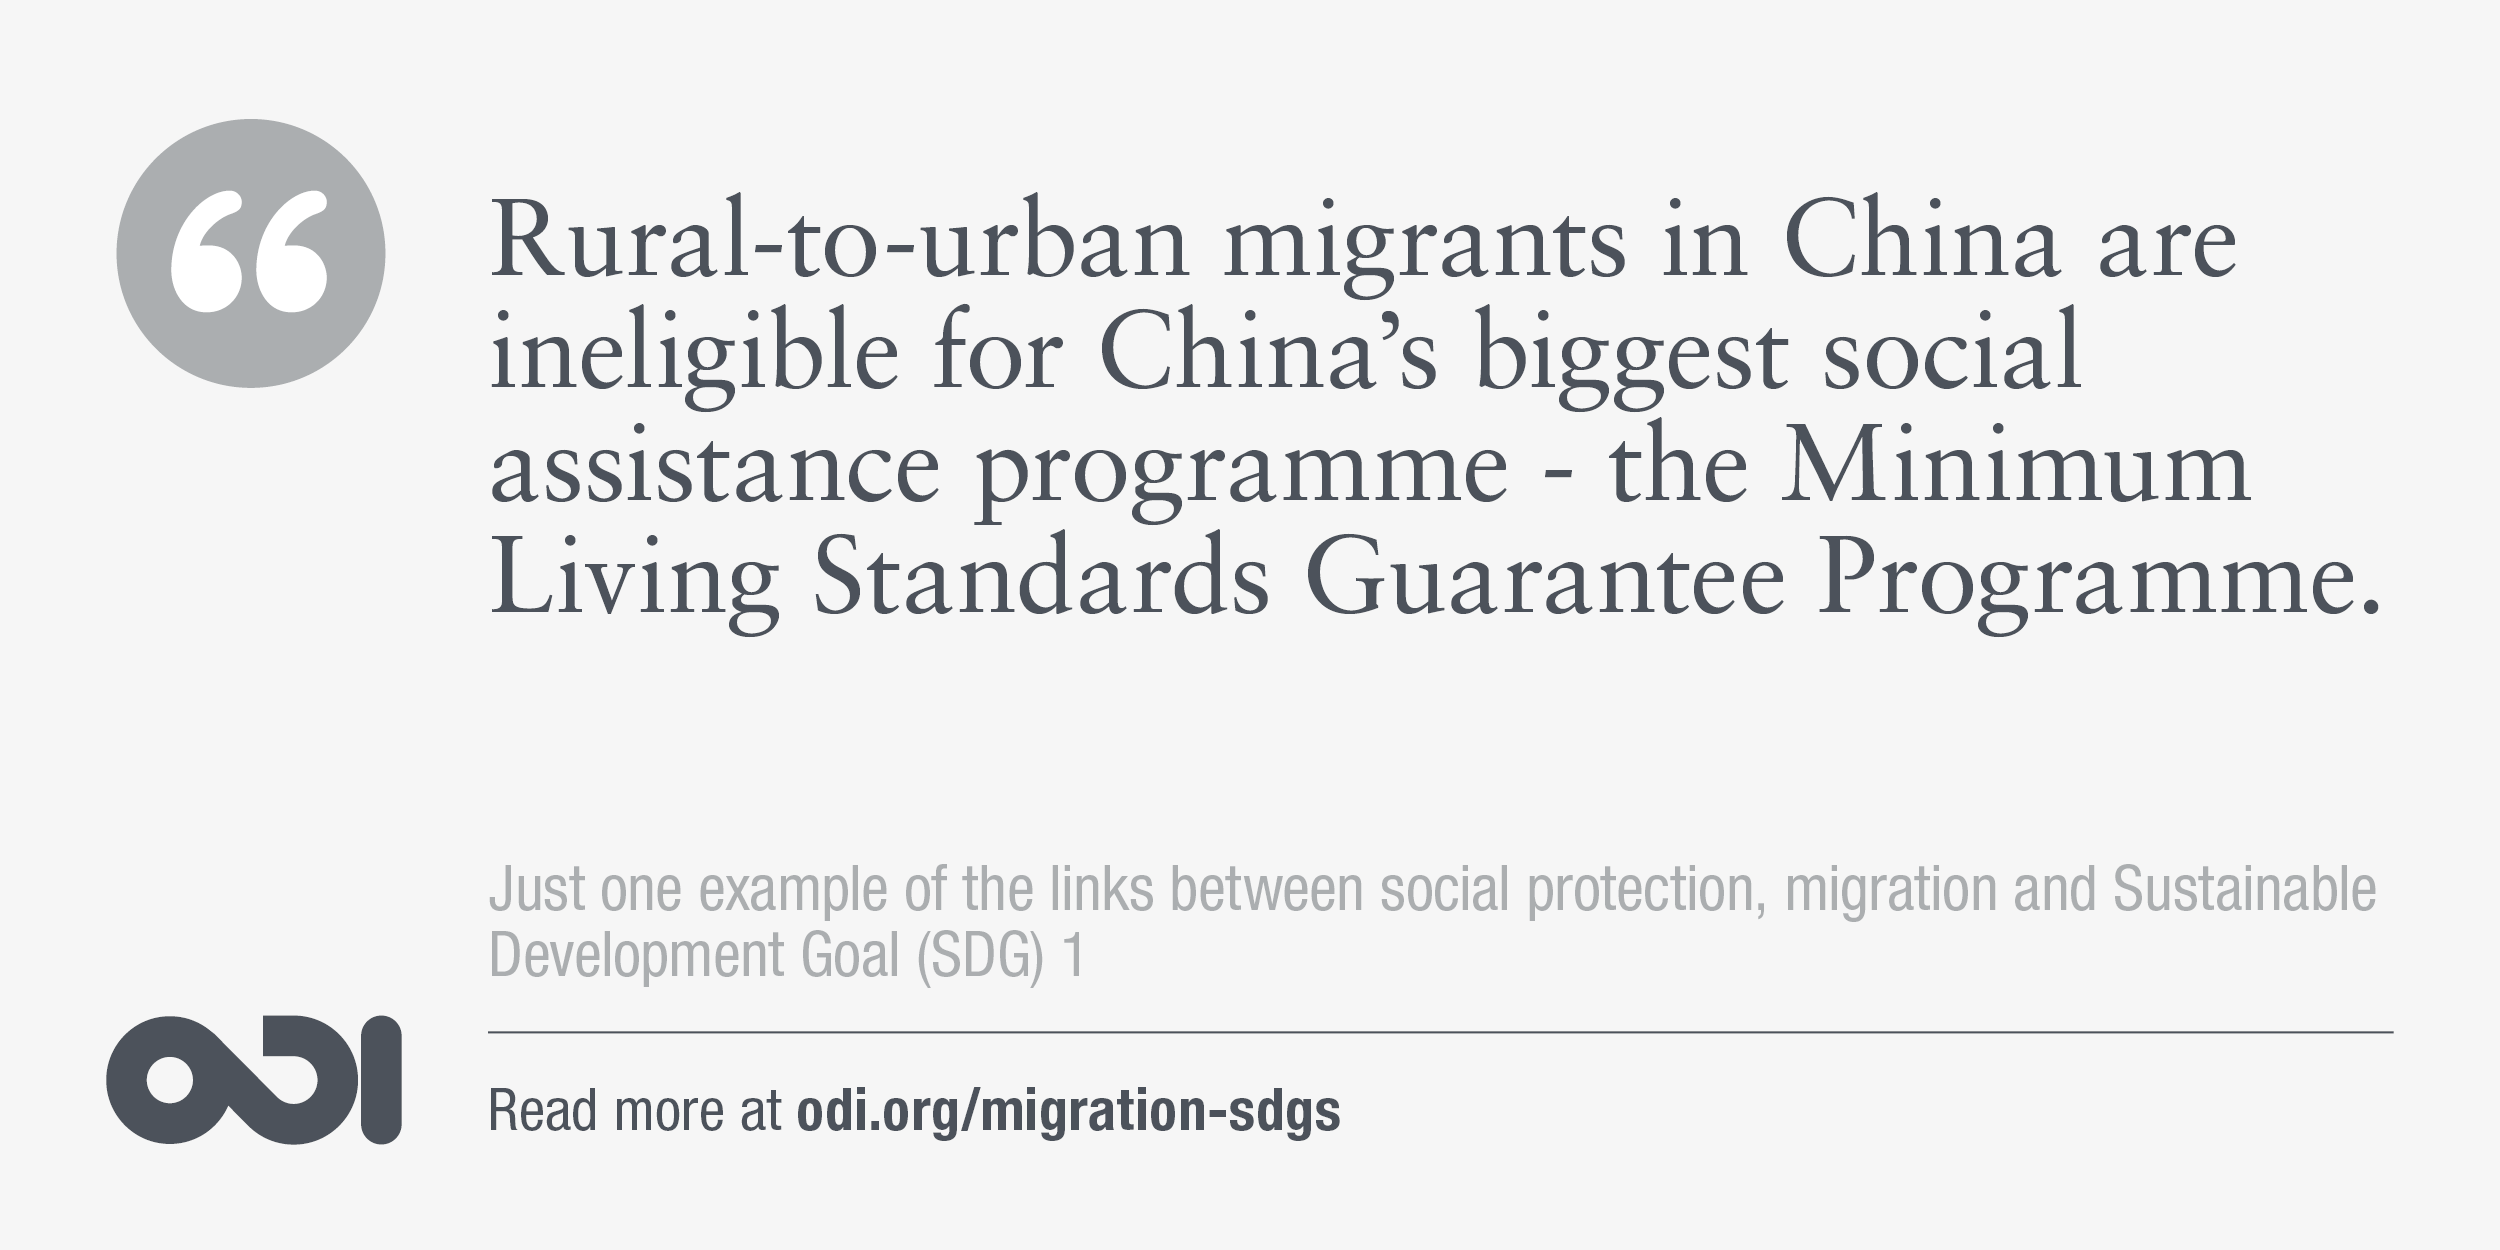 The links between social protection, migration and SDG 1.